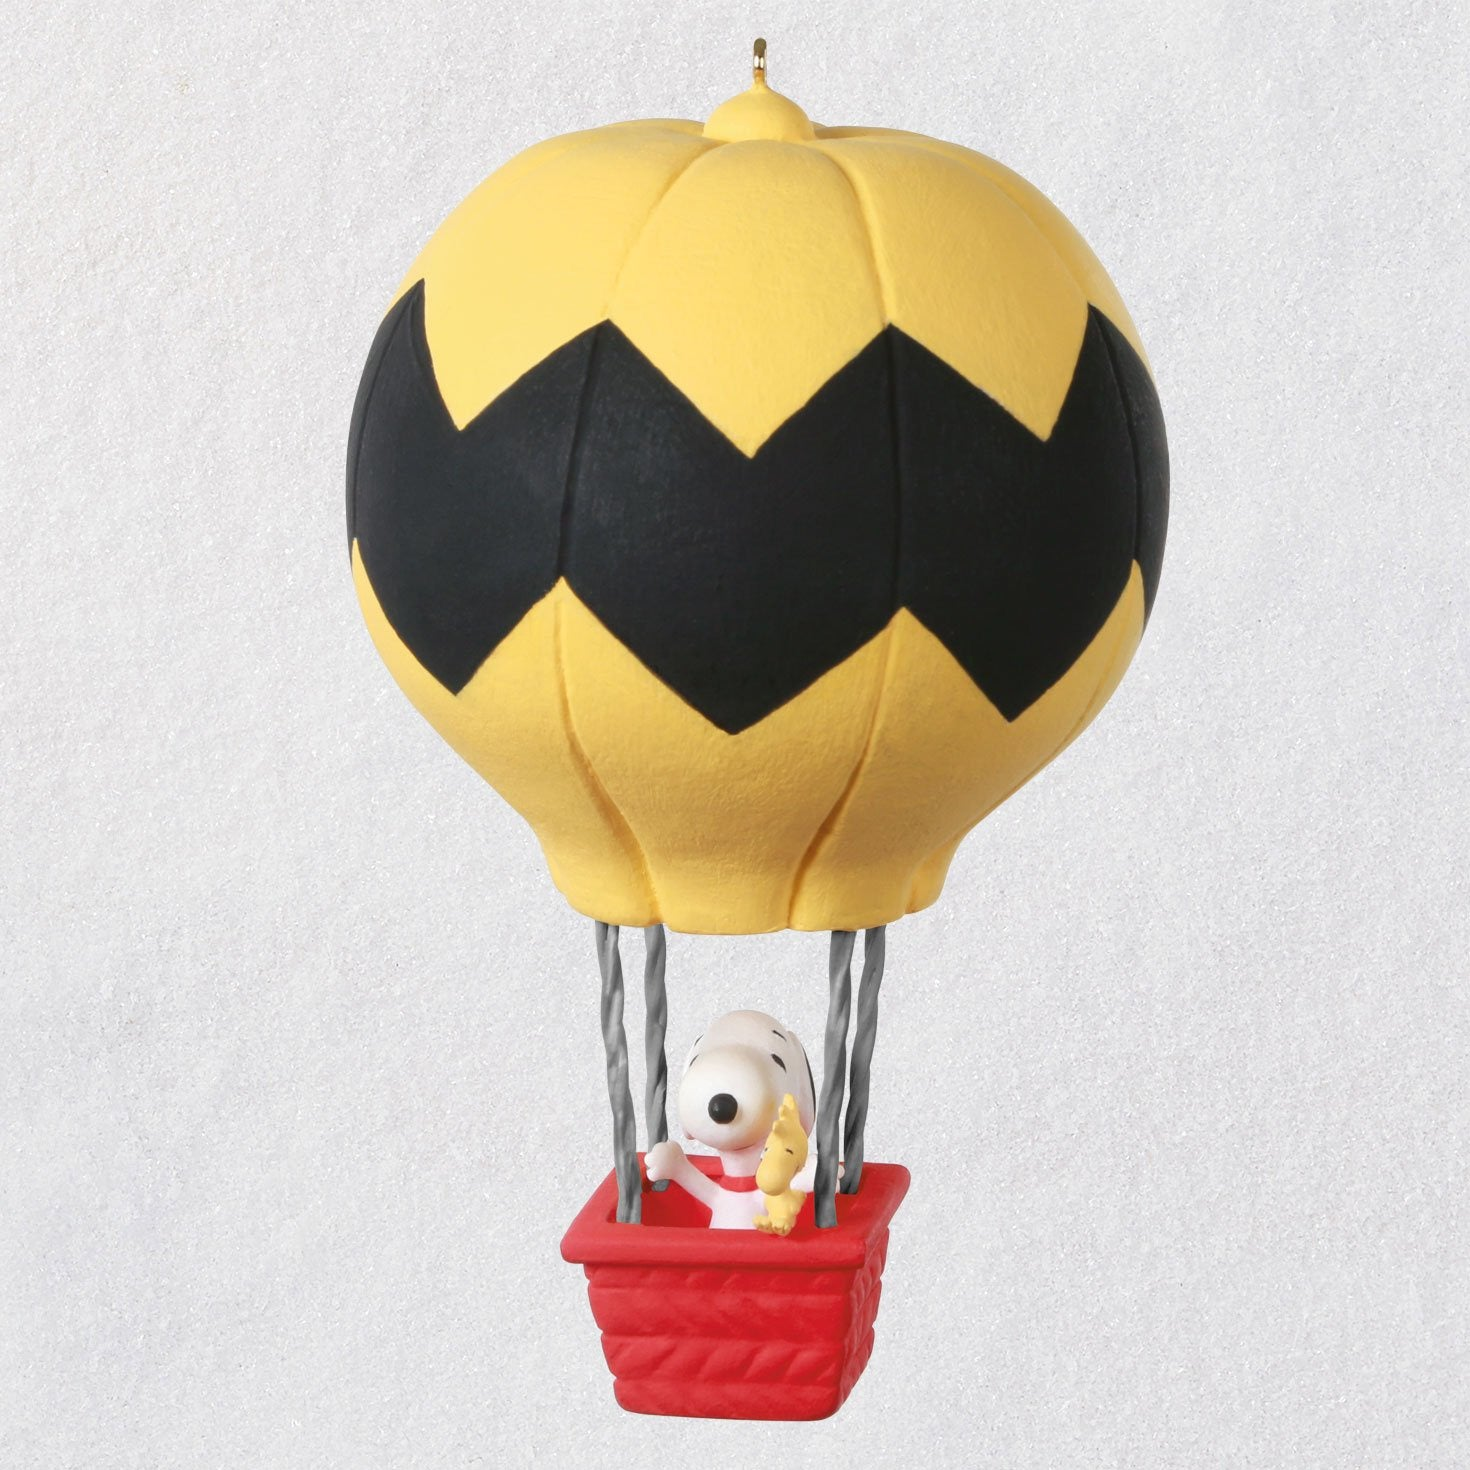 Hallmark The Peanuts® Gang Smooth Sailing Hot Air Balloon Ornament